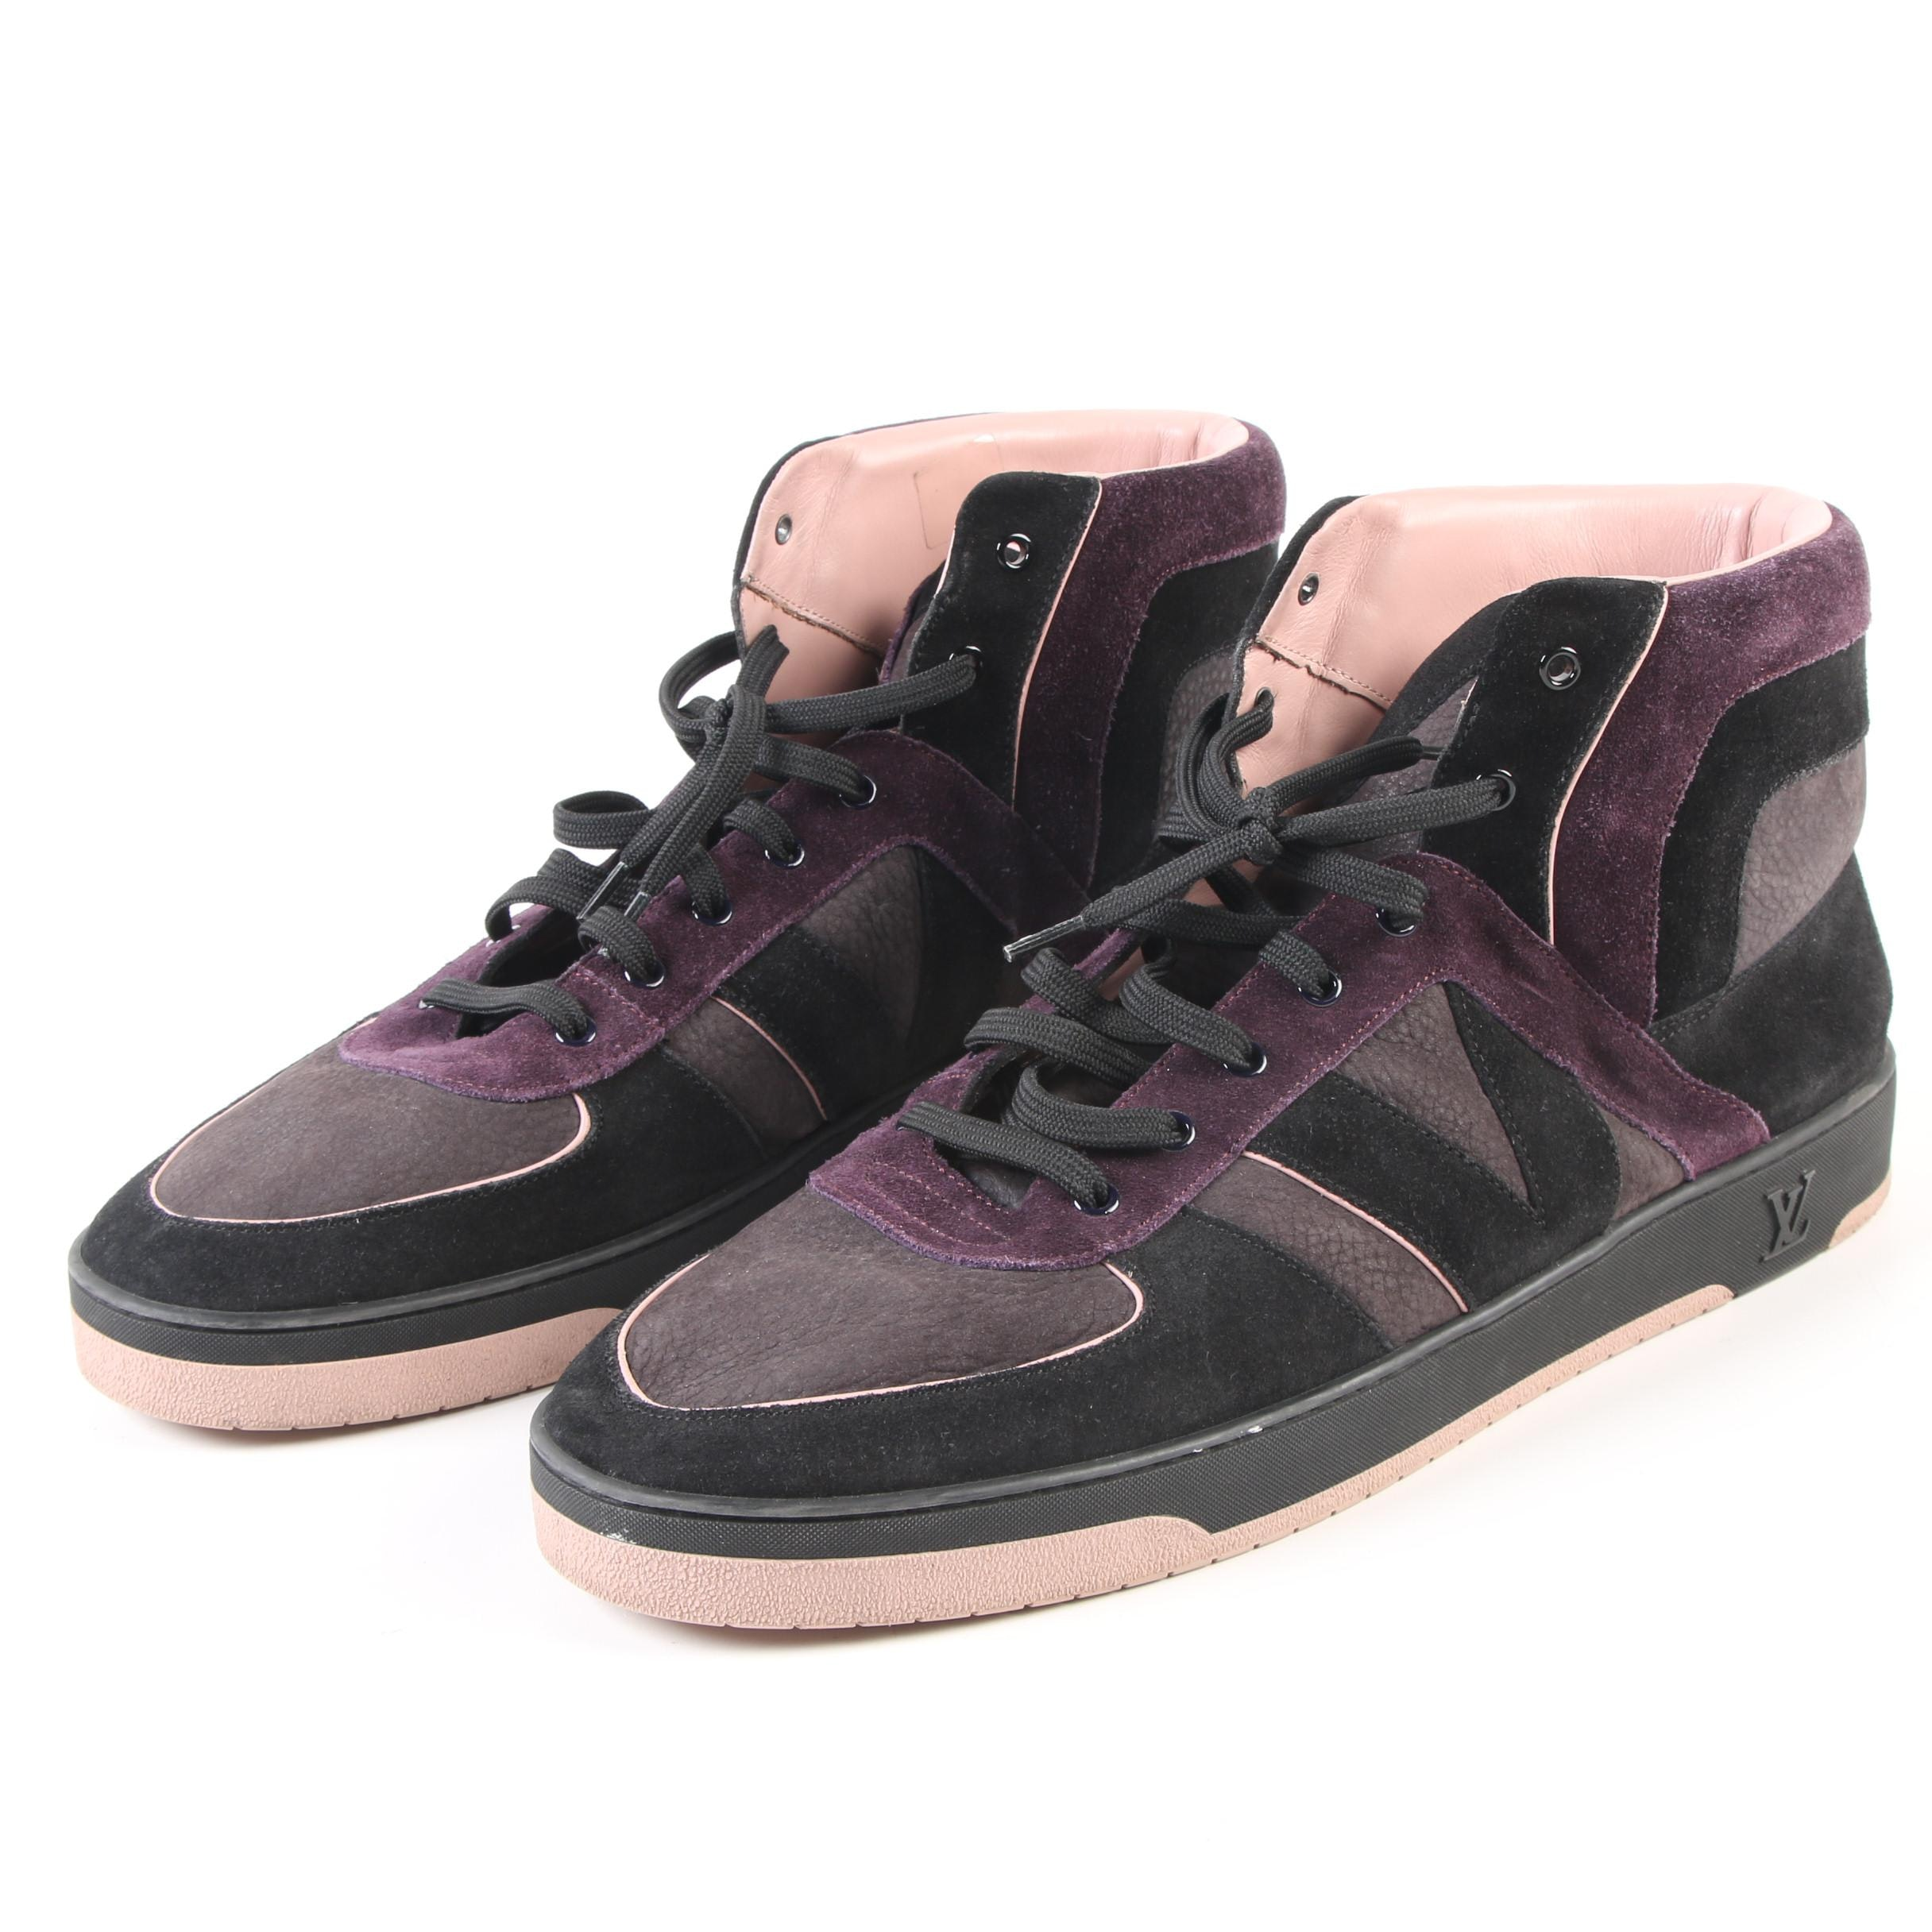 Men's Louis Vuitton Black, Purple and Blush Suede and Leather High Top Sneakers